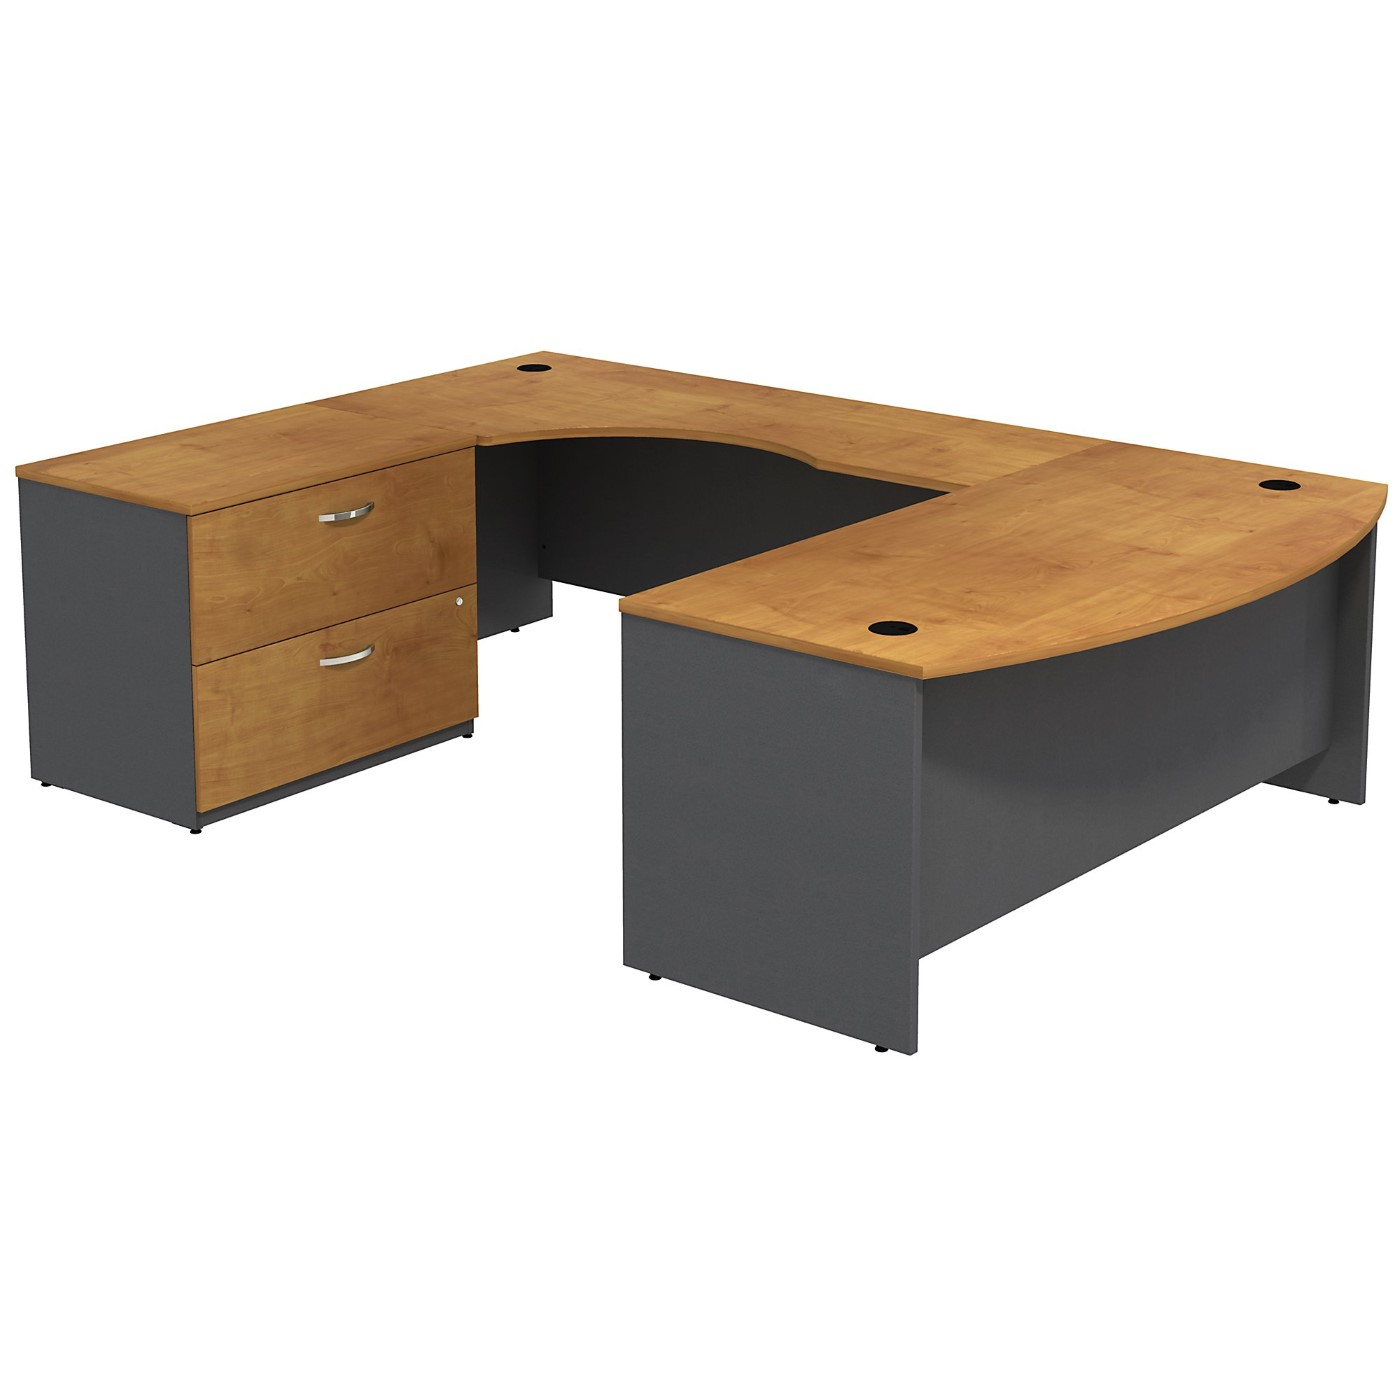 BUSH BUSINESS FURNITURE SERIES C BOW FRONT LEFT HANDED U SHAPED DESK WITH 2 DRAWER LATERAL FILE CABINET. FREE SHIPPING